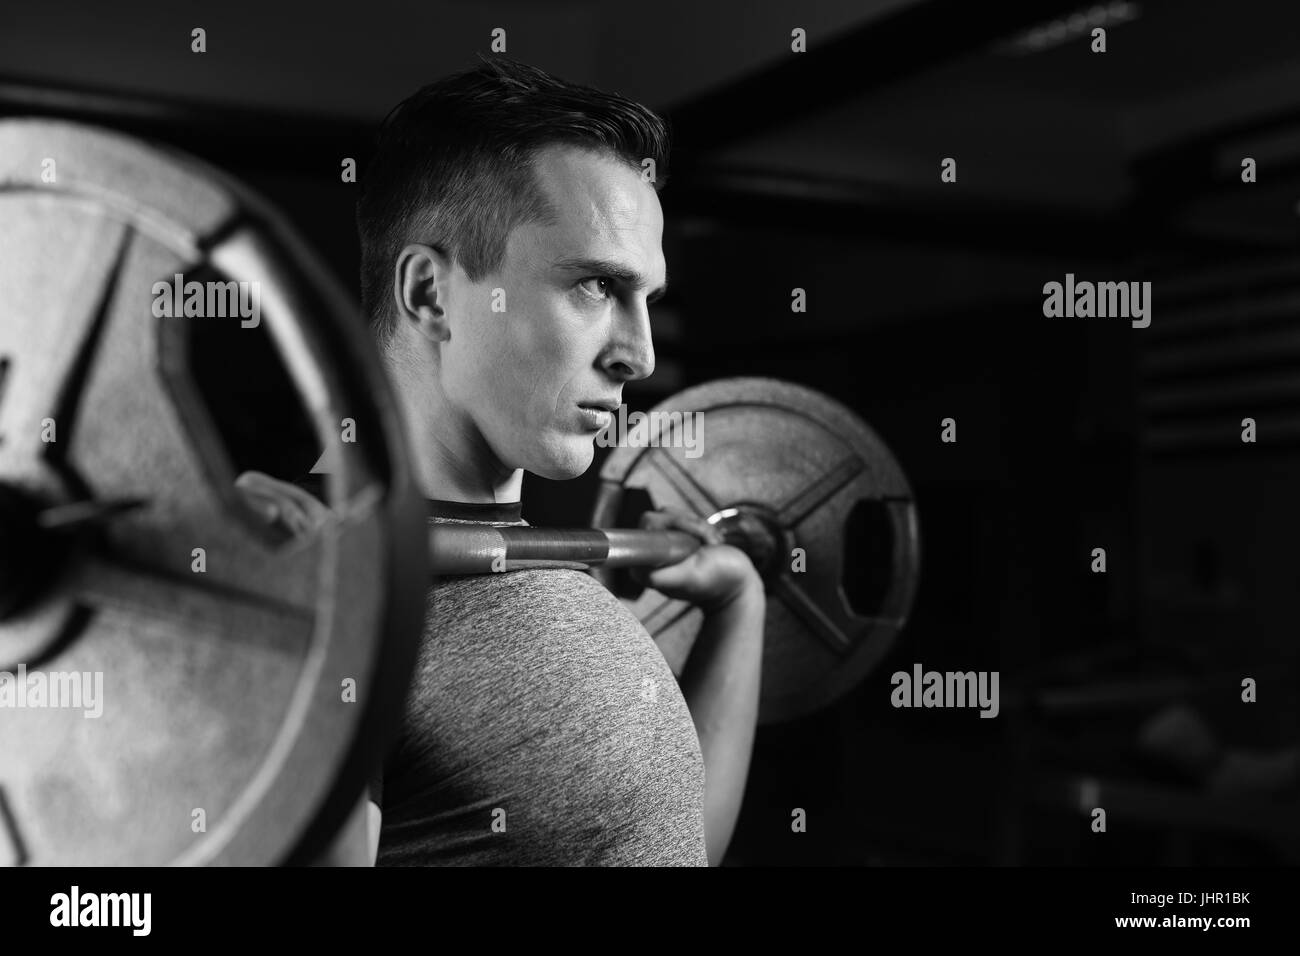 man with weight training equipment on sport gym club - Stock Image 9e14d6e651